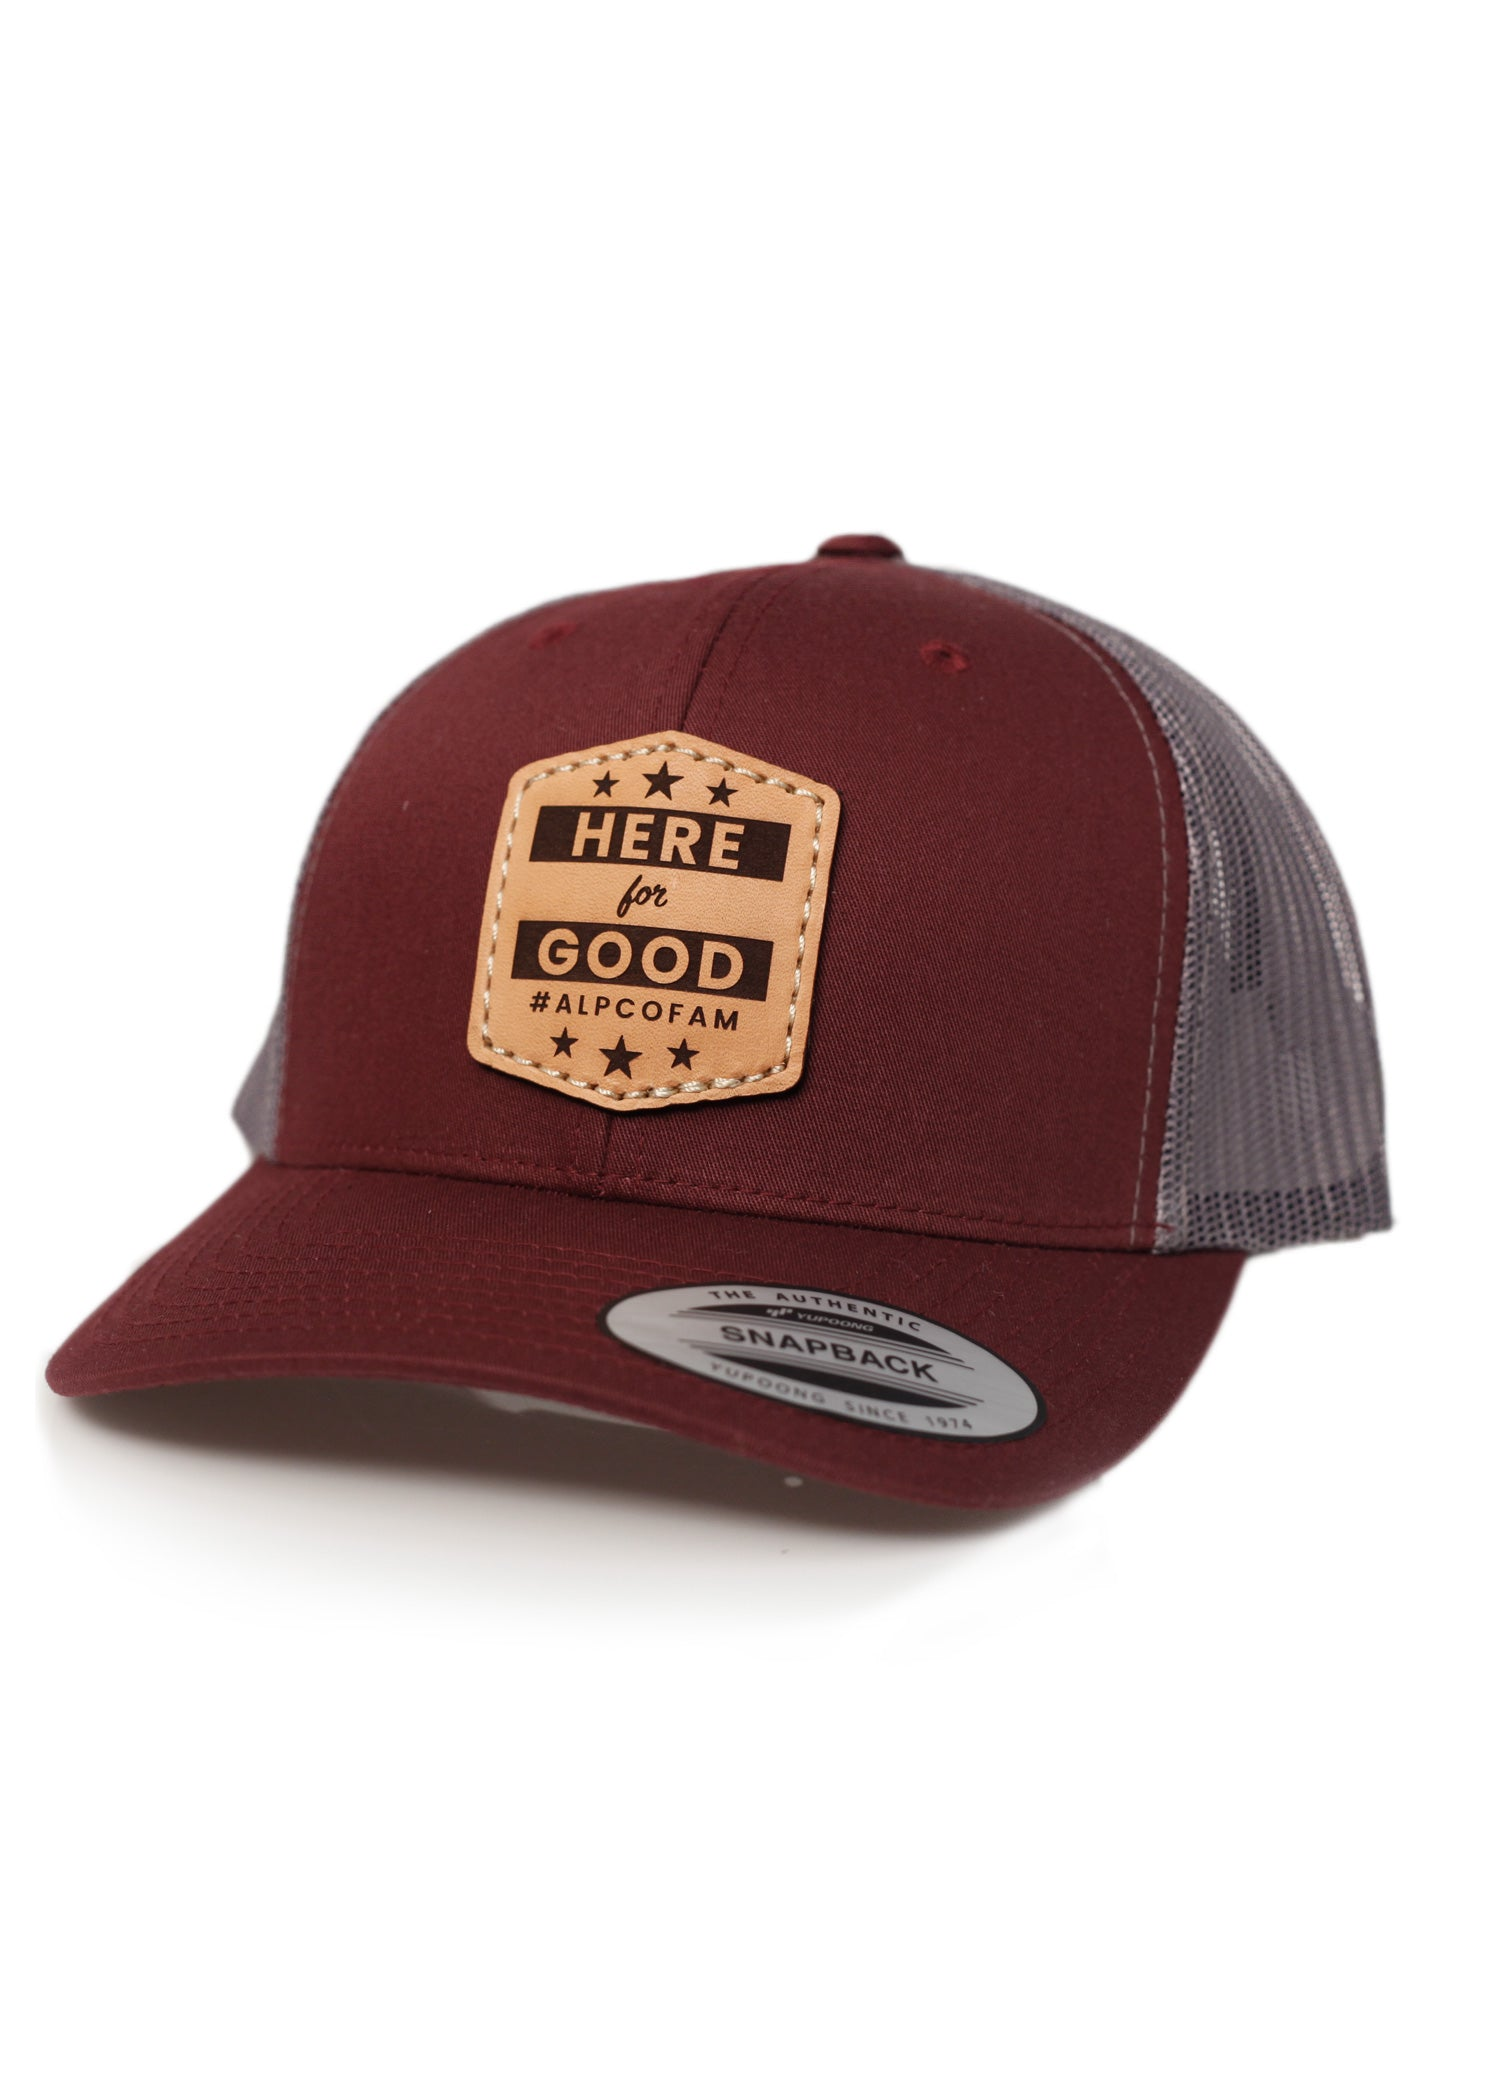 Here For Good ALPCO Family Hat